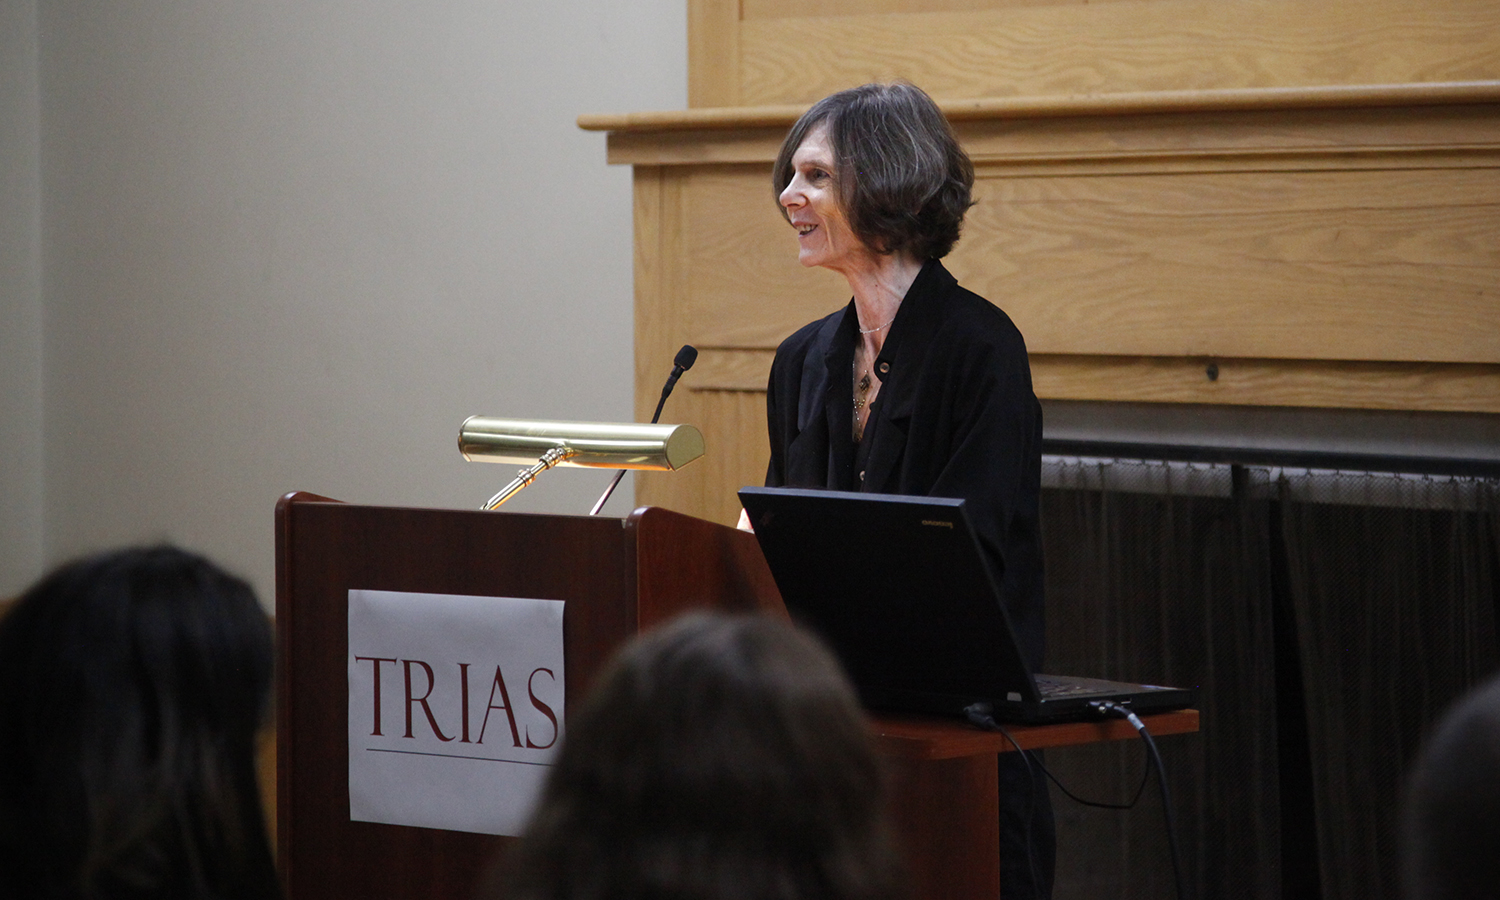 Laurie Sheck, author of A Monster's Notes and Island of the Mad, gives a reading from her new work as part of the Trias reading series in the Hirshson Ballroom.